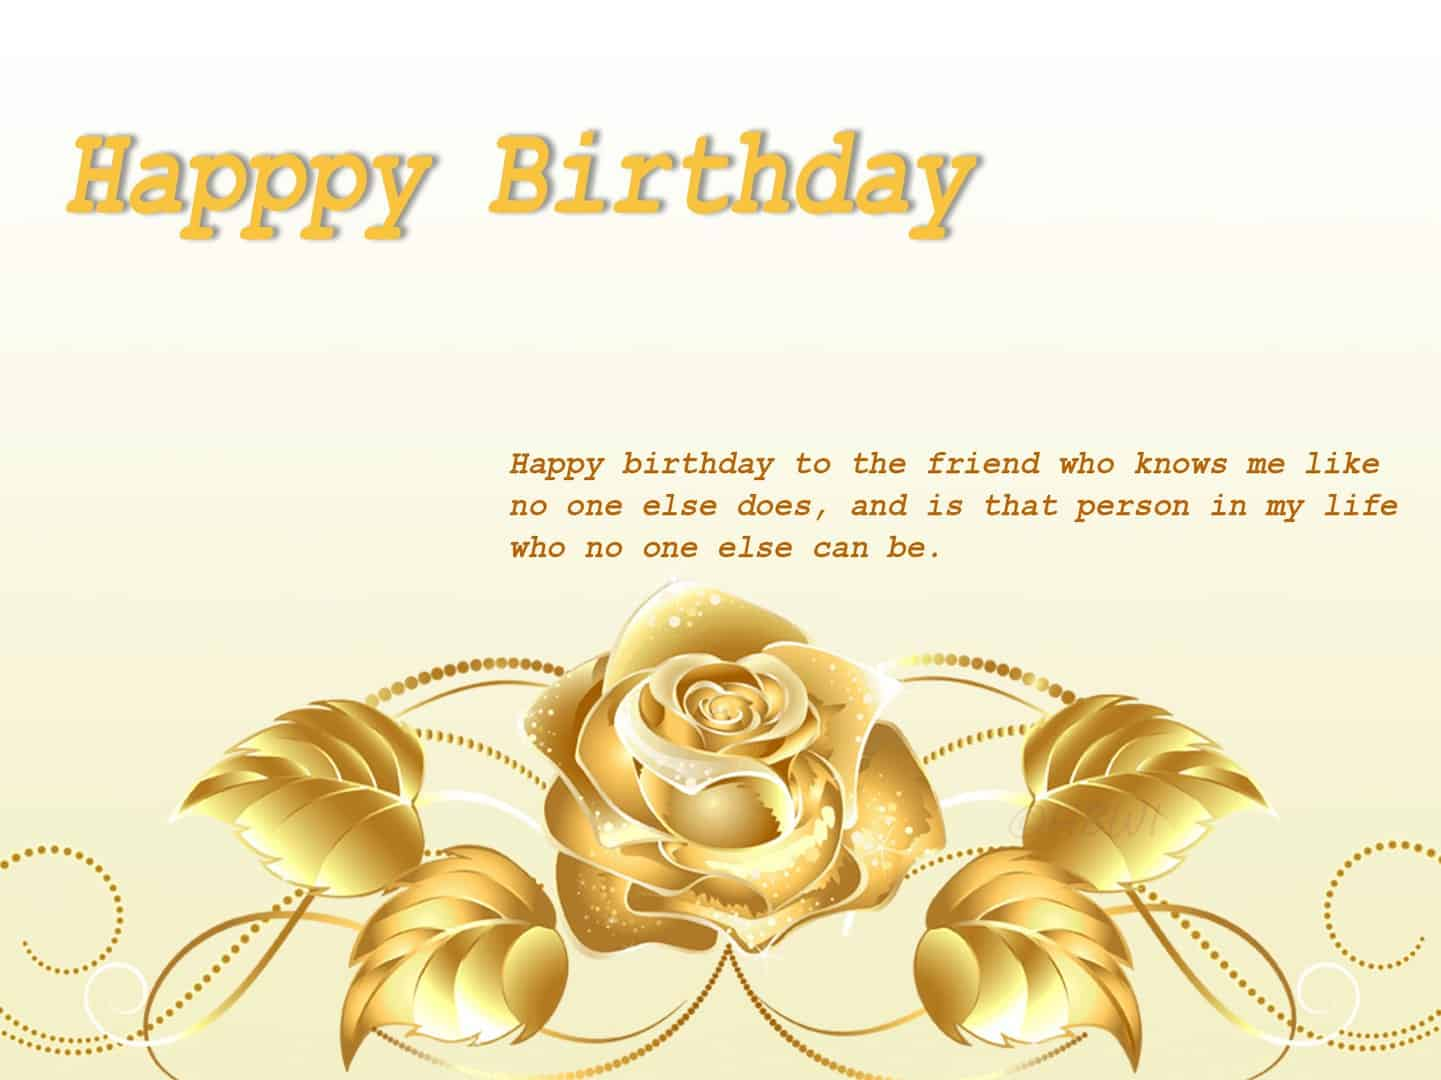 Wish an exclusive happy birthday with golden rose